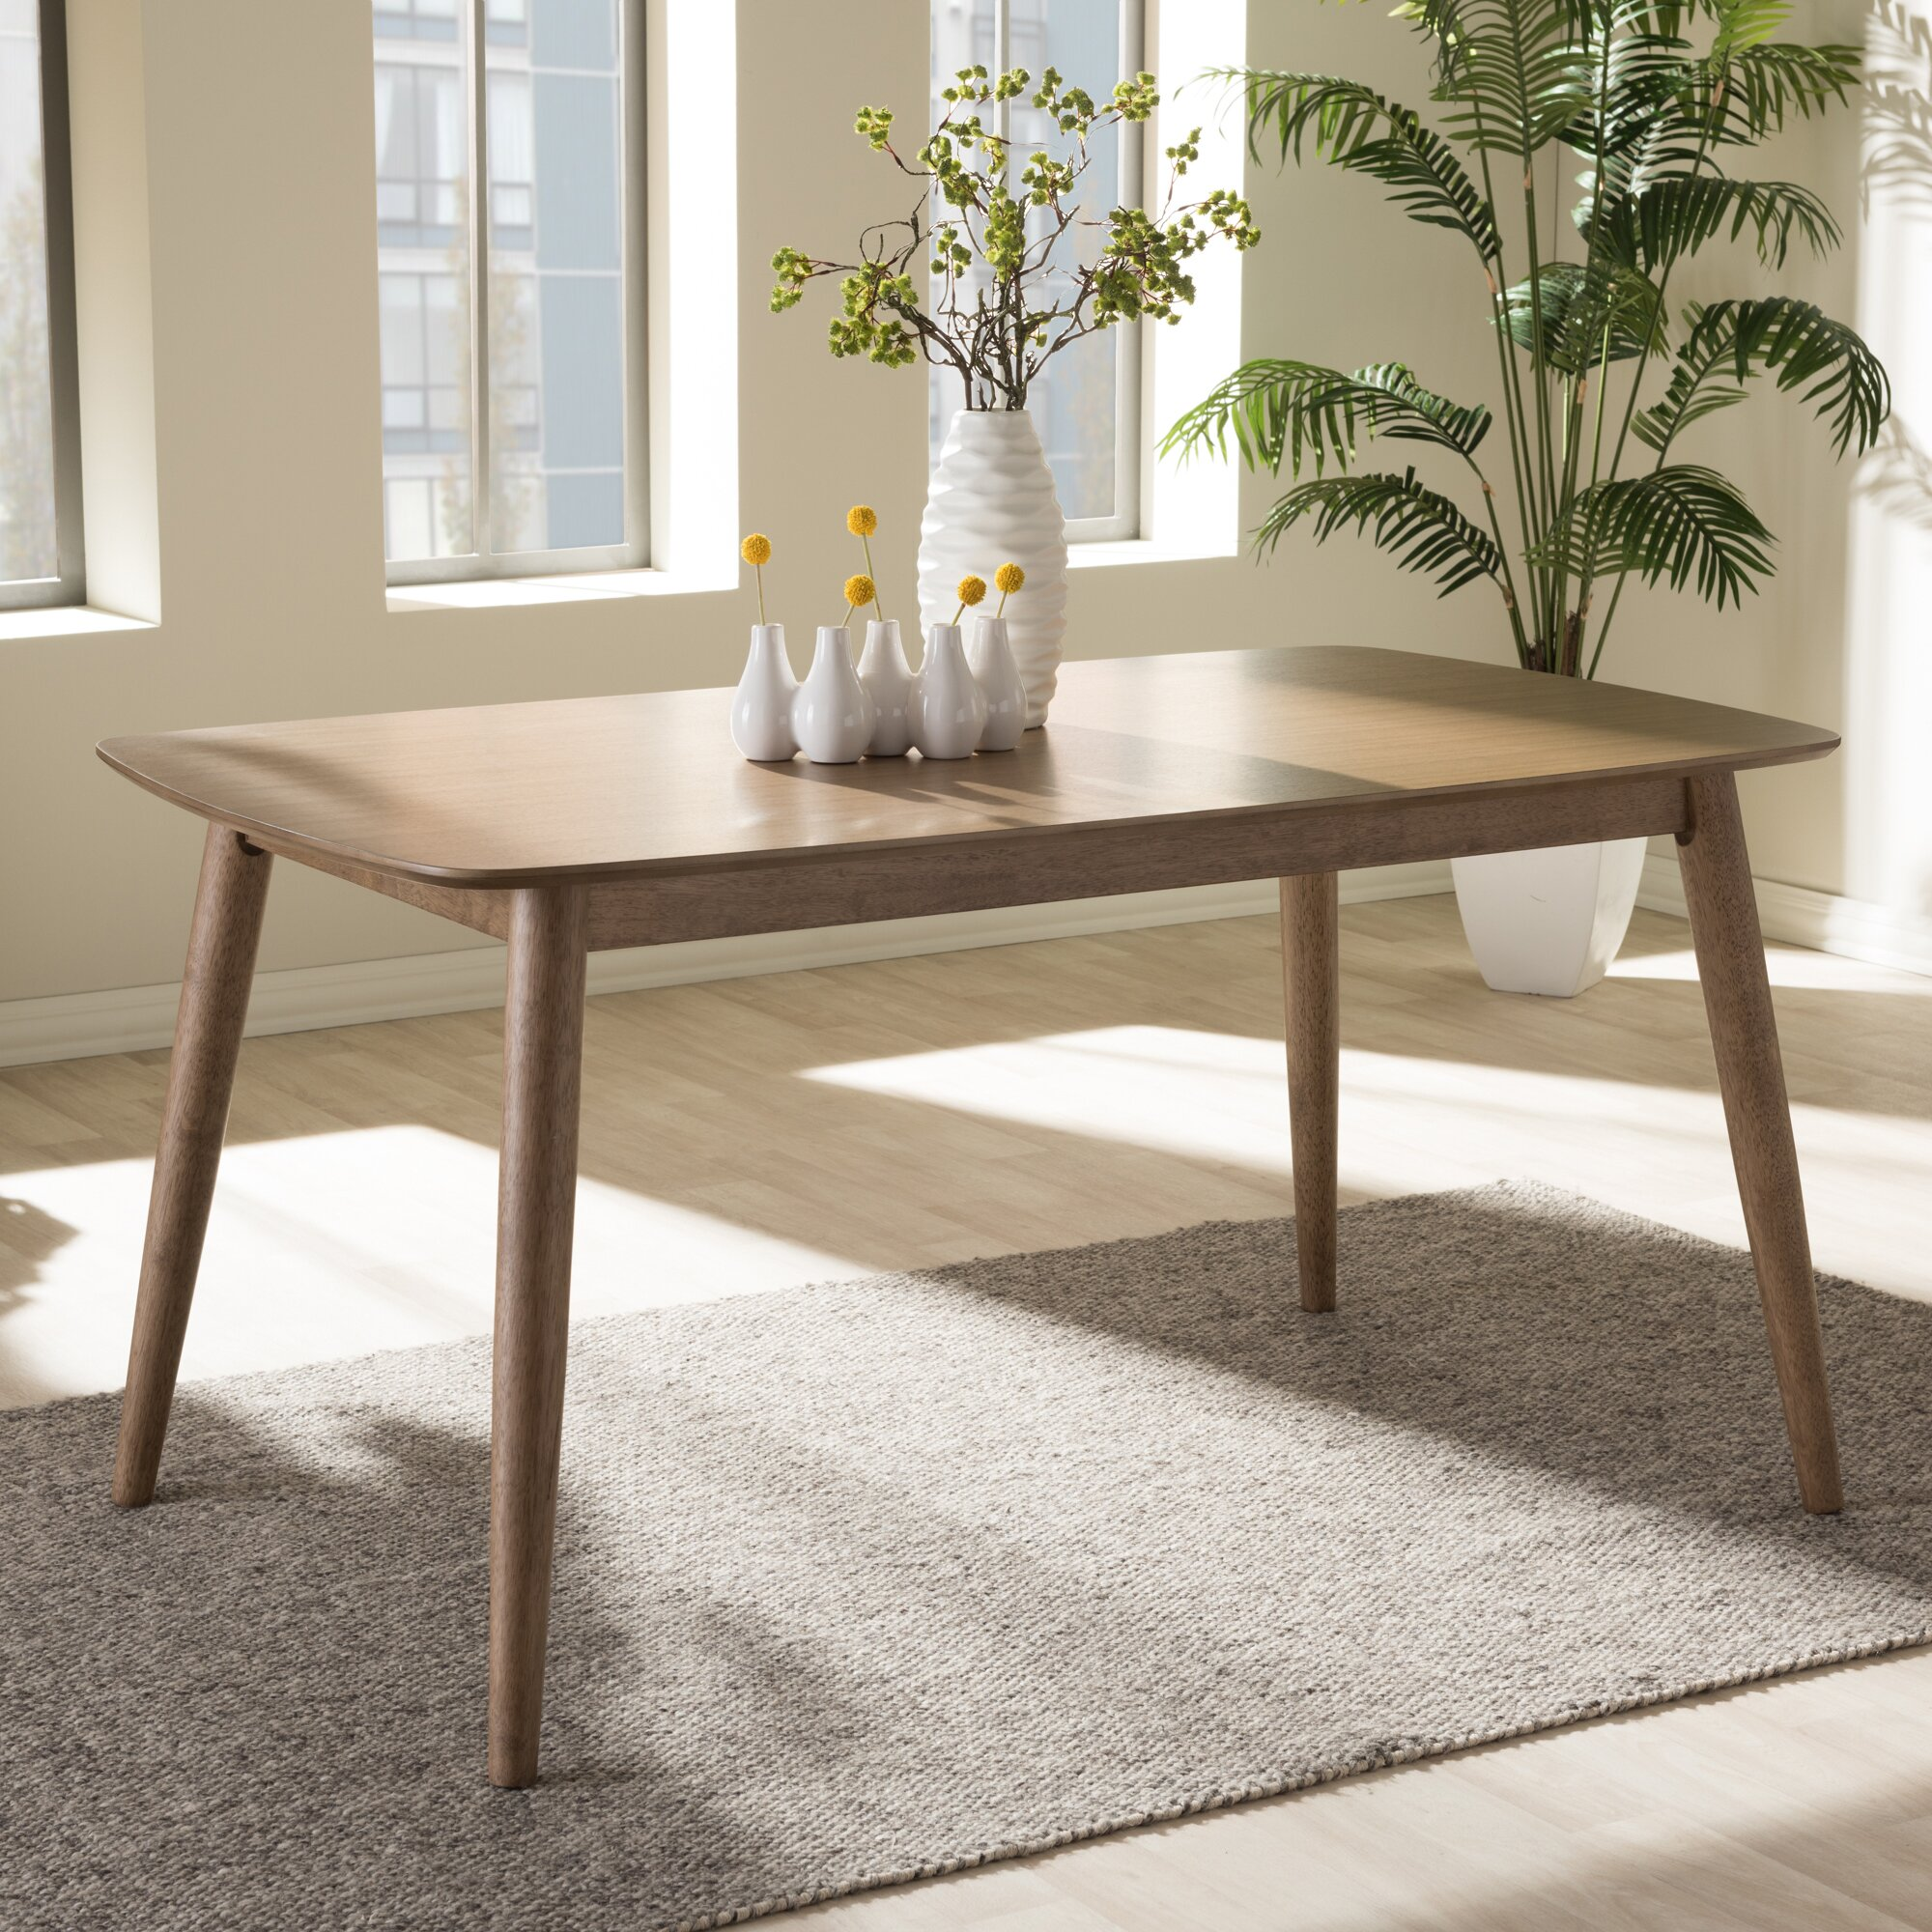 Mid Century Modern Dining: Wholesale Interiors Baxton Studio Dining Table & Reviews